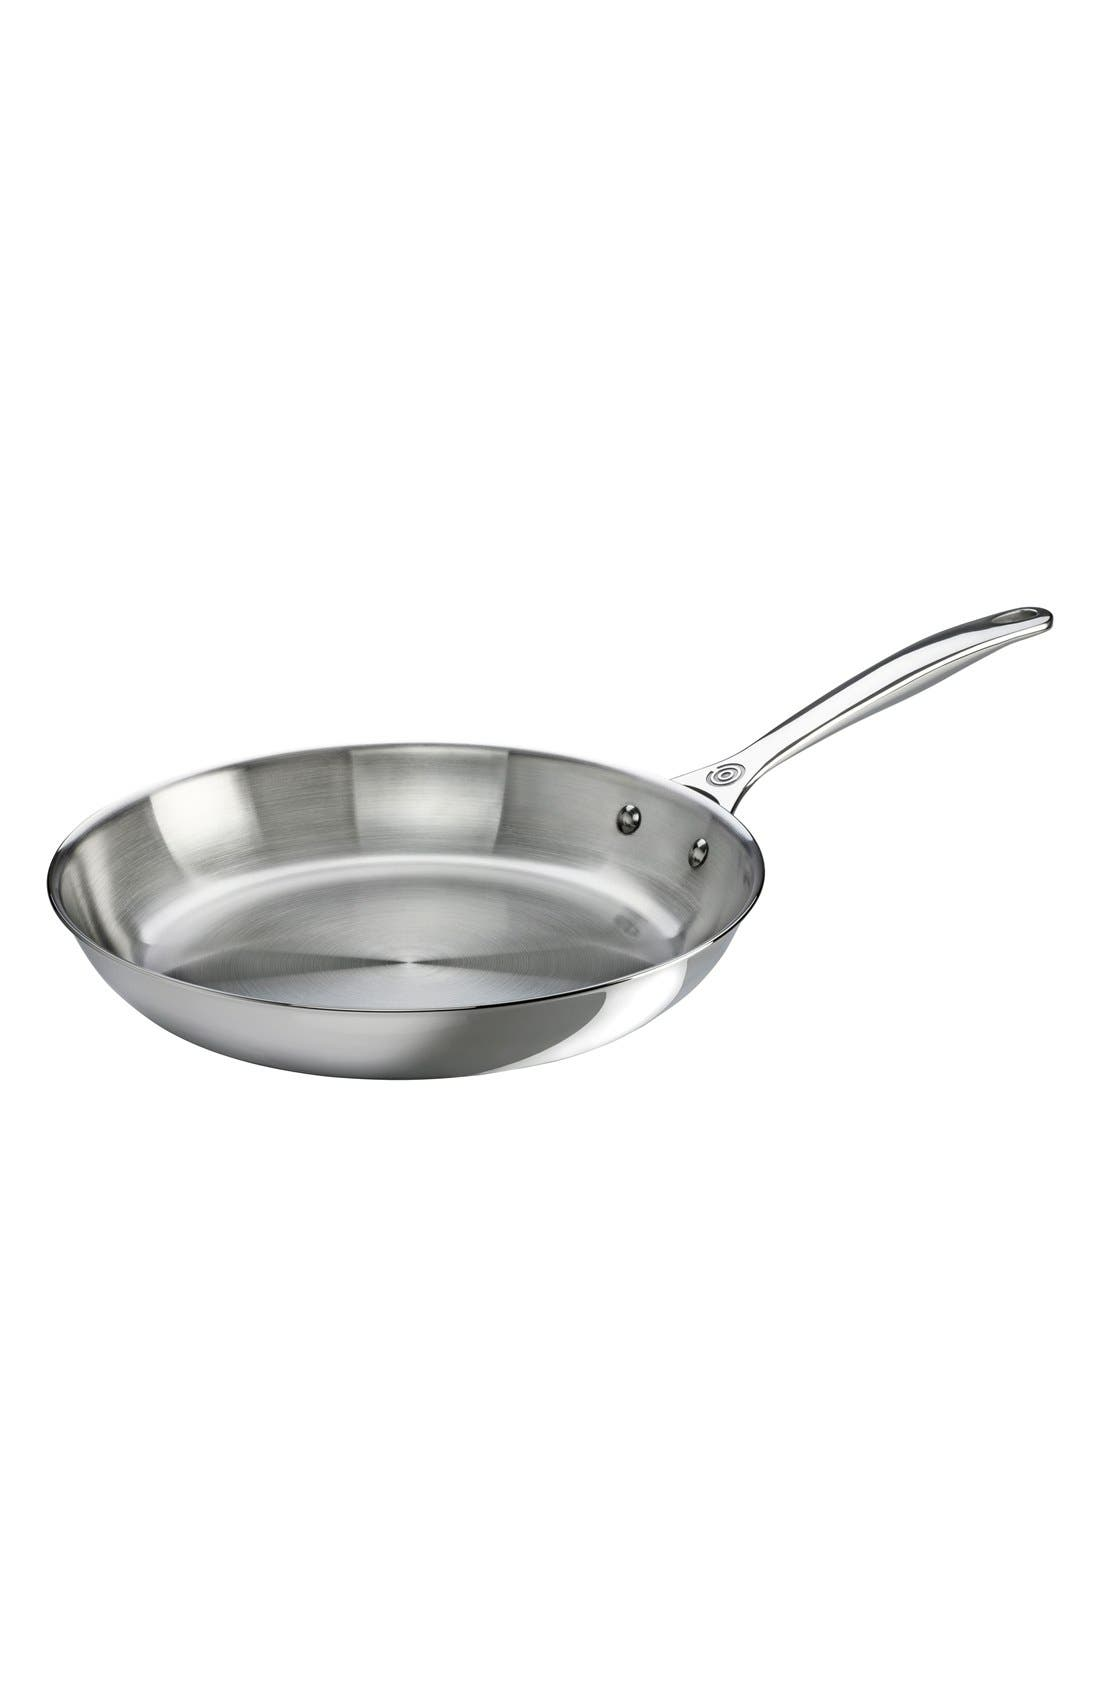 12 Inch Stainless Steel Fry Pan,                             Main thumbnail 1, color,                             040